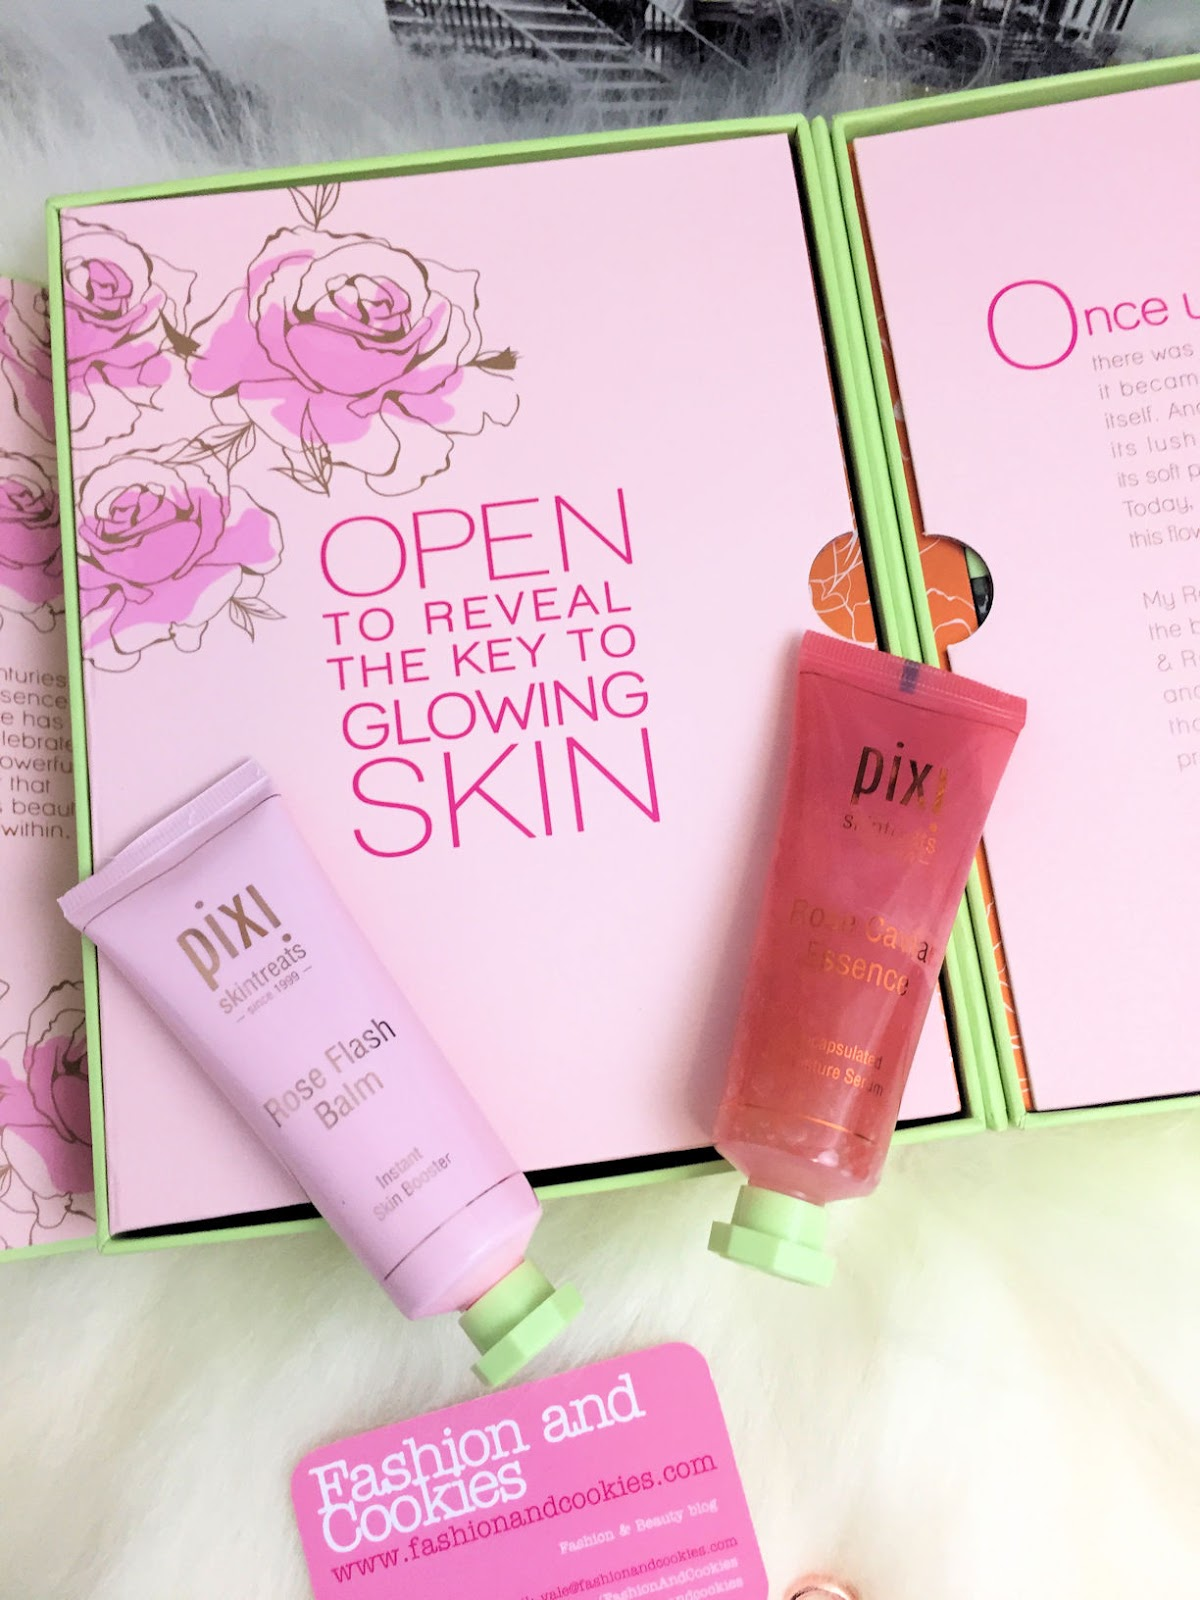 How to have a glowing skin? Two skintreats from PIXI Beauty are the key to a bright complexion: Rose Caviar Essence & Rose Flash Balm on Fashion and Cookies beauty blog